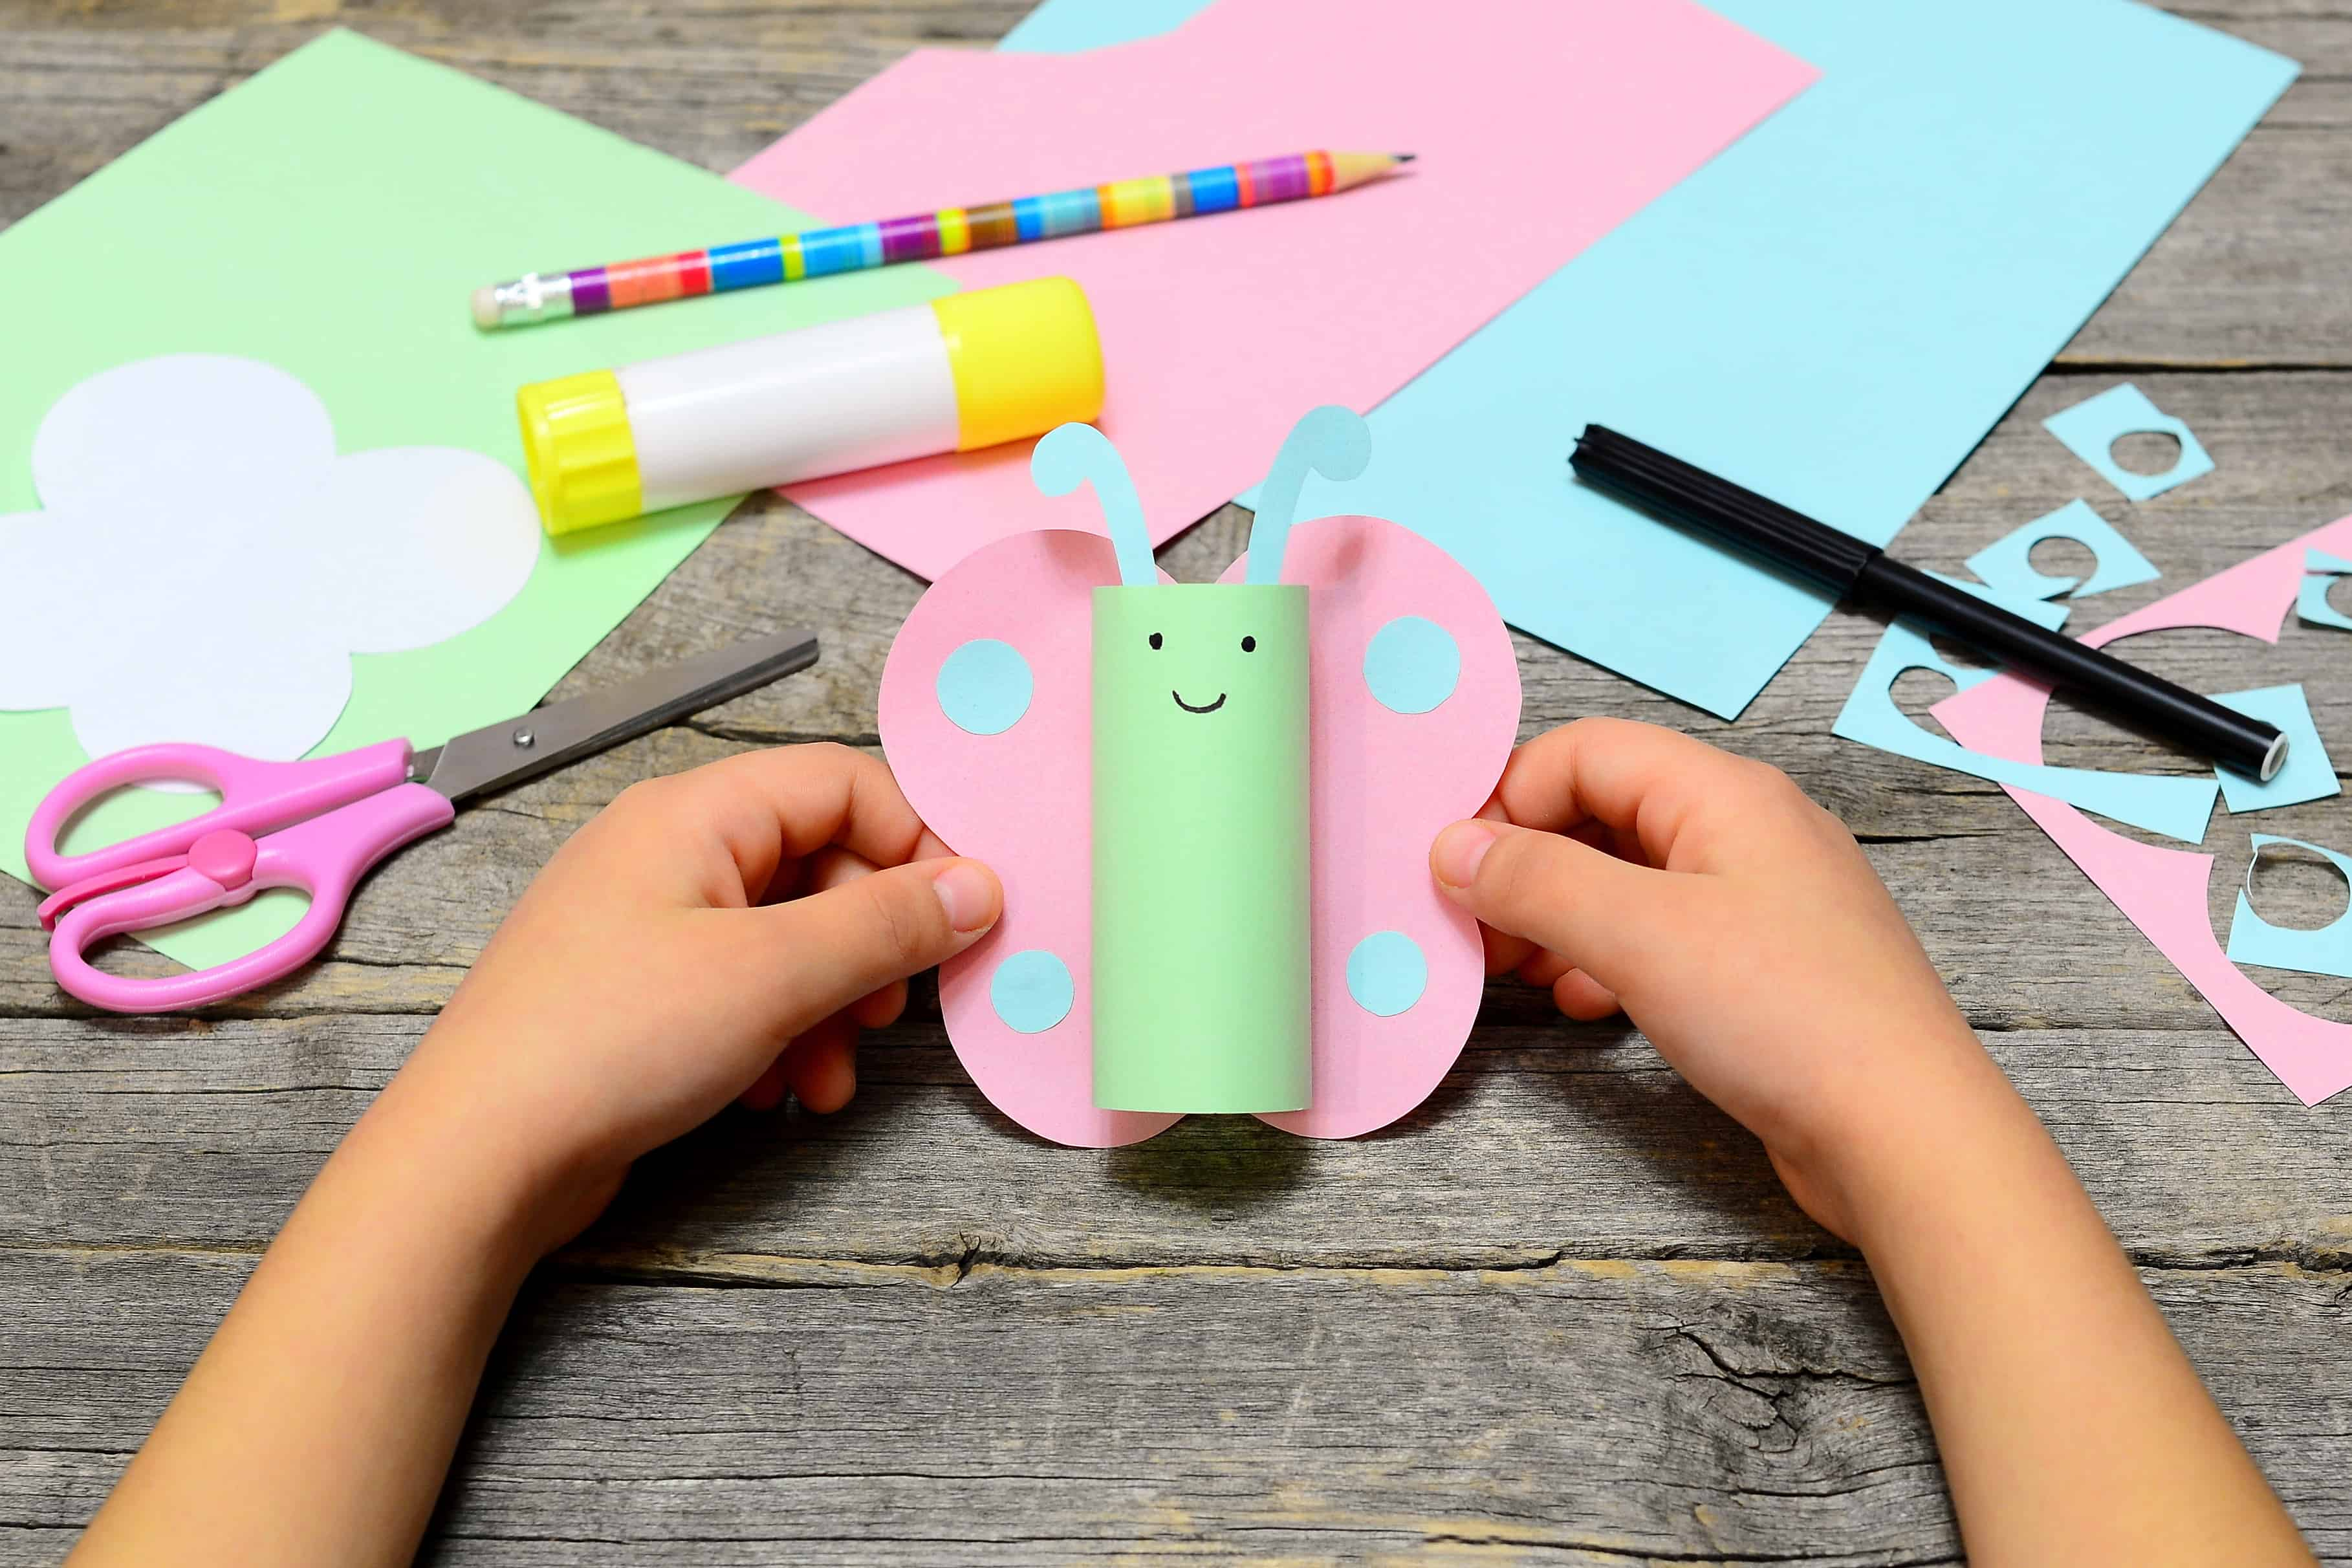 Preschooler craft with paper, scisors, and glue.